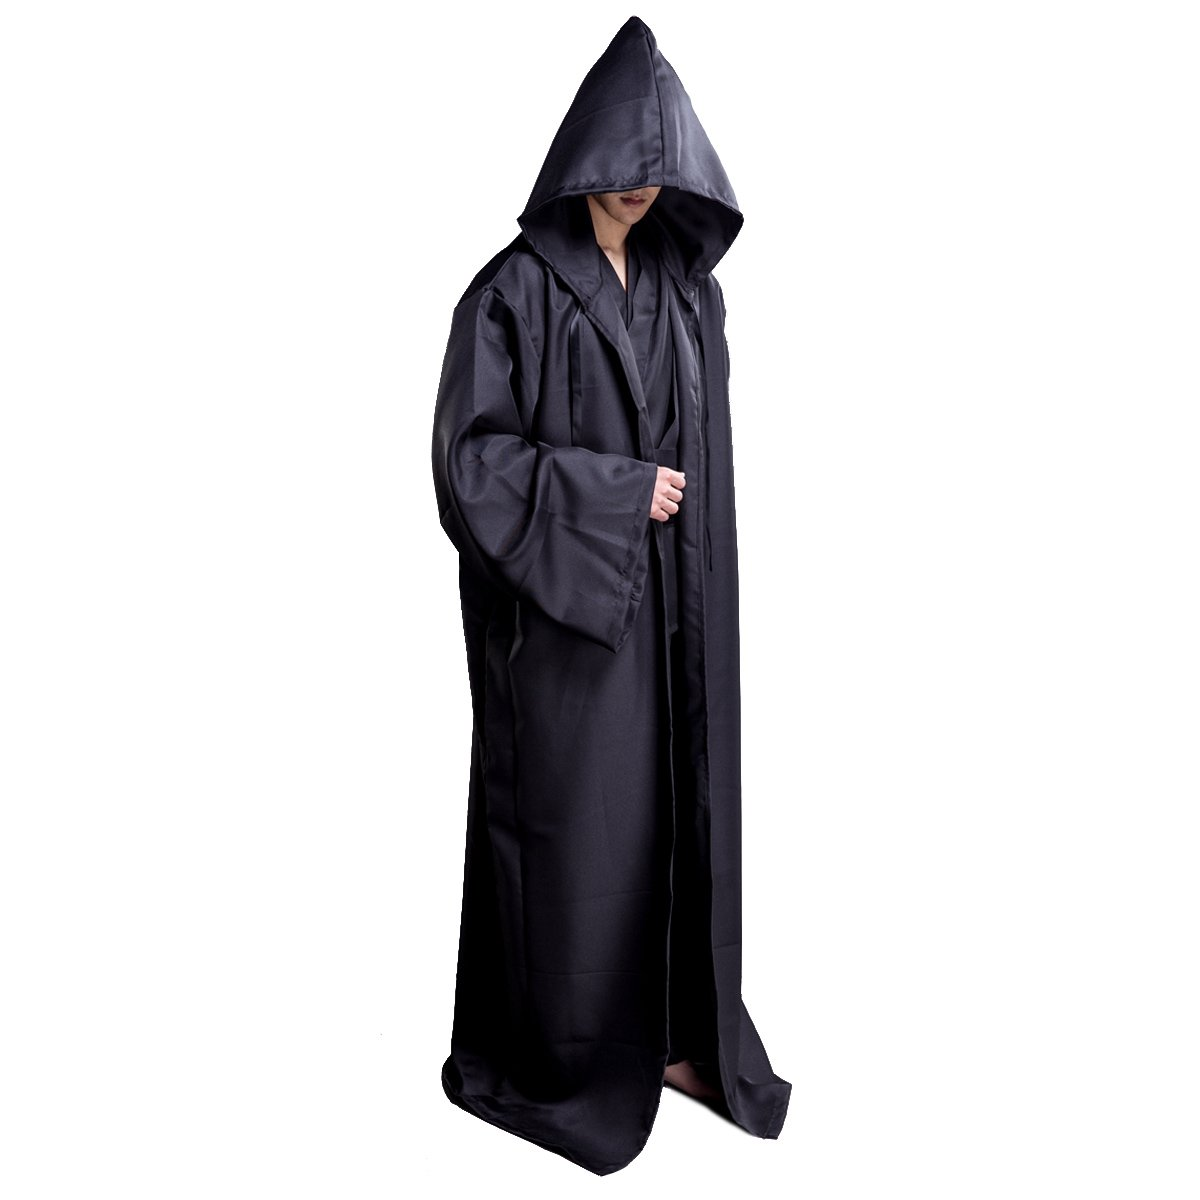 Qkpar Hooded Robe Cloak Knight Cosplay Costume Cape CEOAMZUSMCUS_MC-991_1